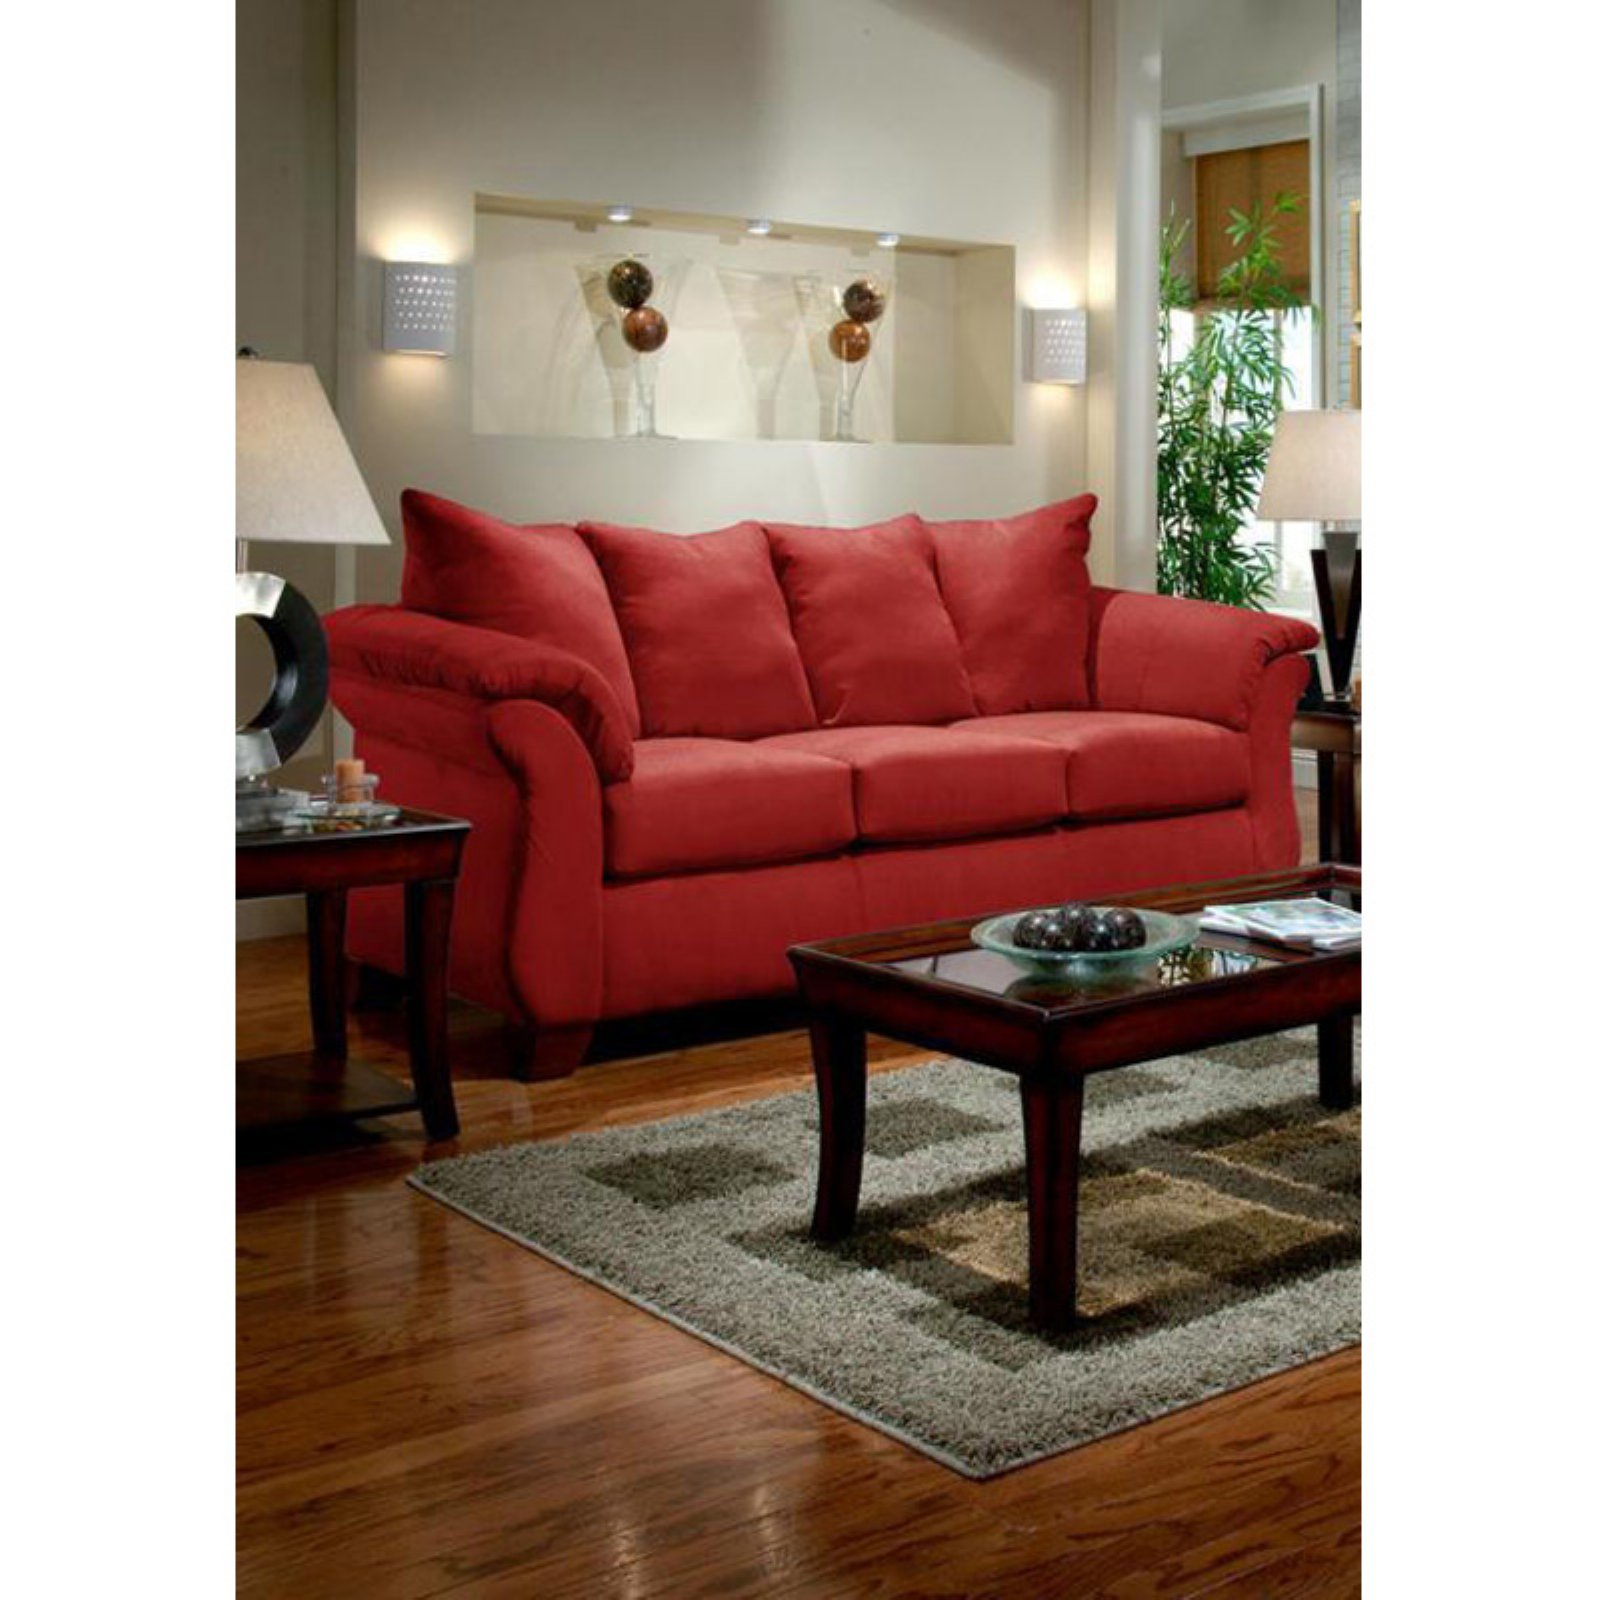 Chelsea Home Furniture Payton Queen Sleeper Sofa